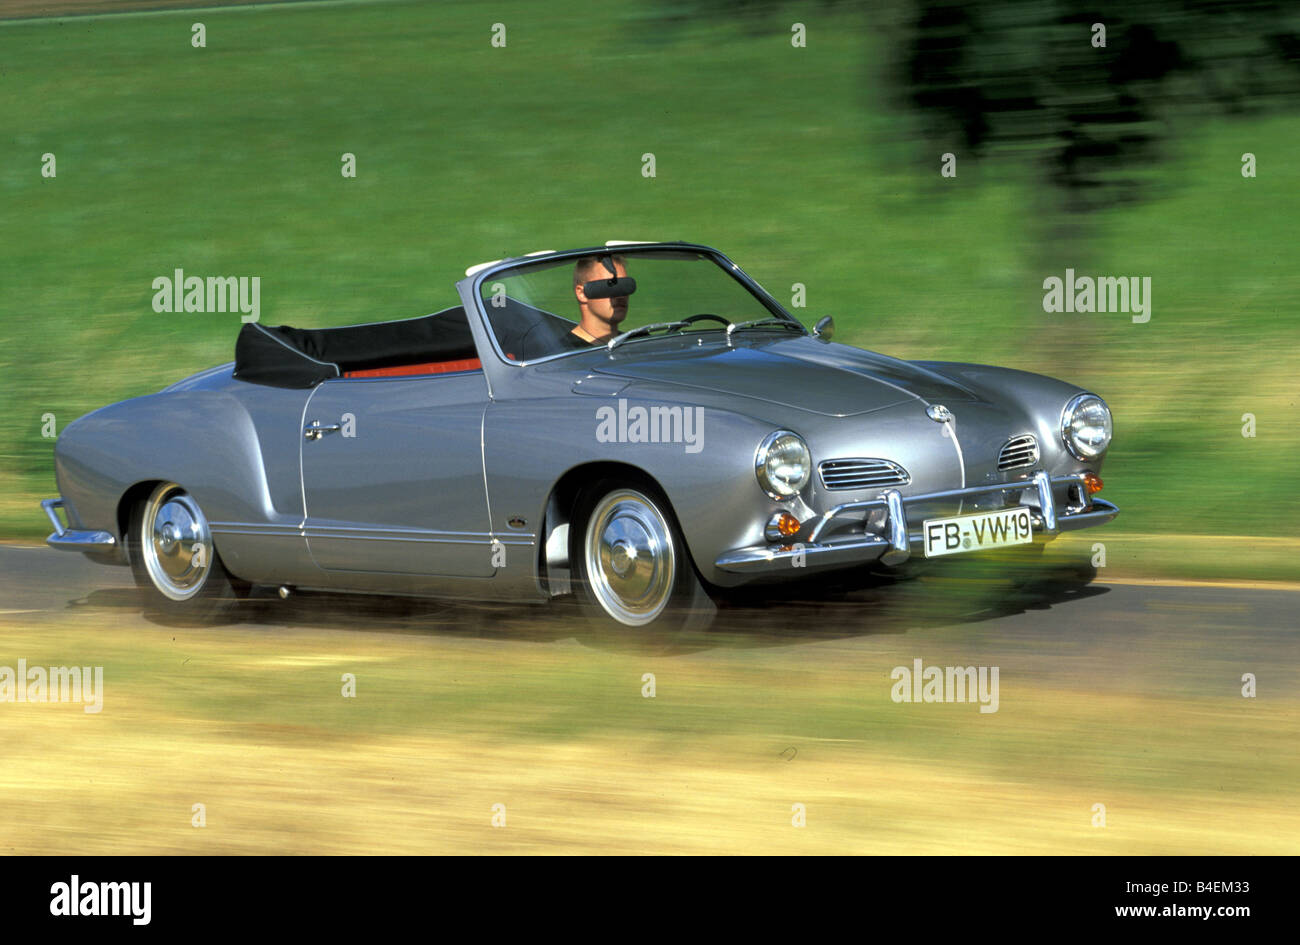 Karmann Ghia High Resolution Stock Photography And Images Alamy